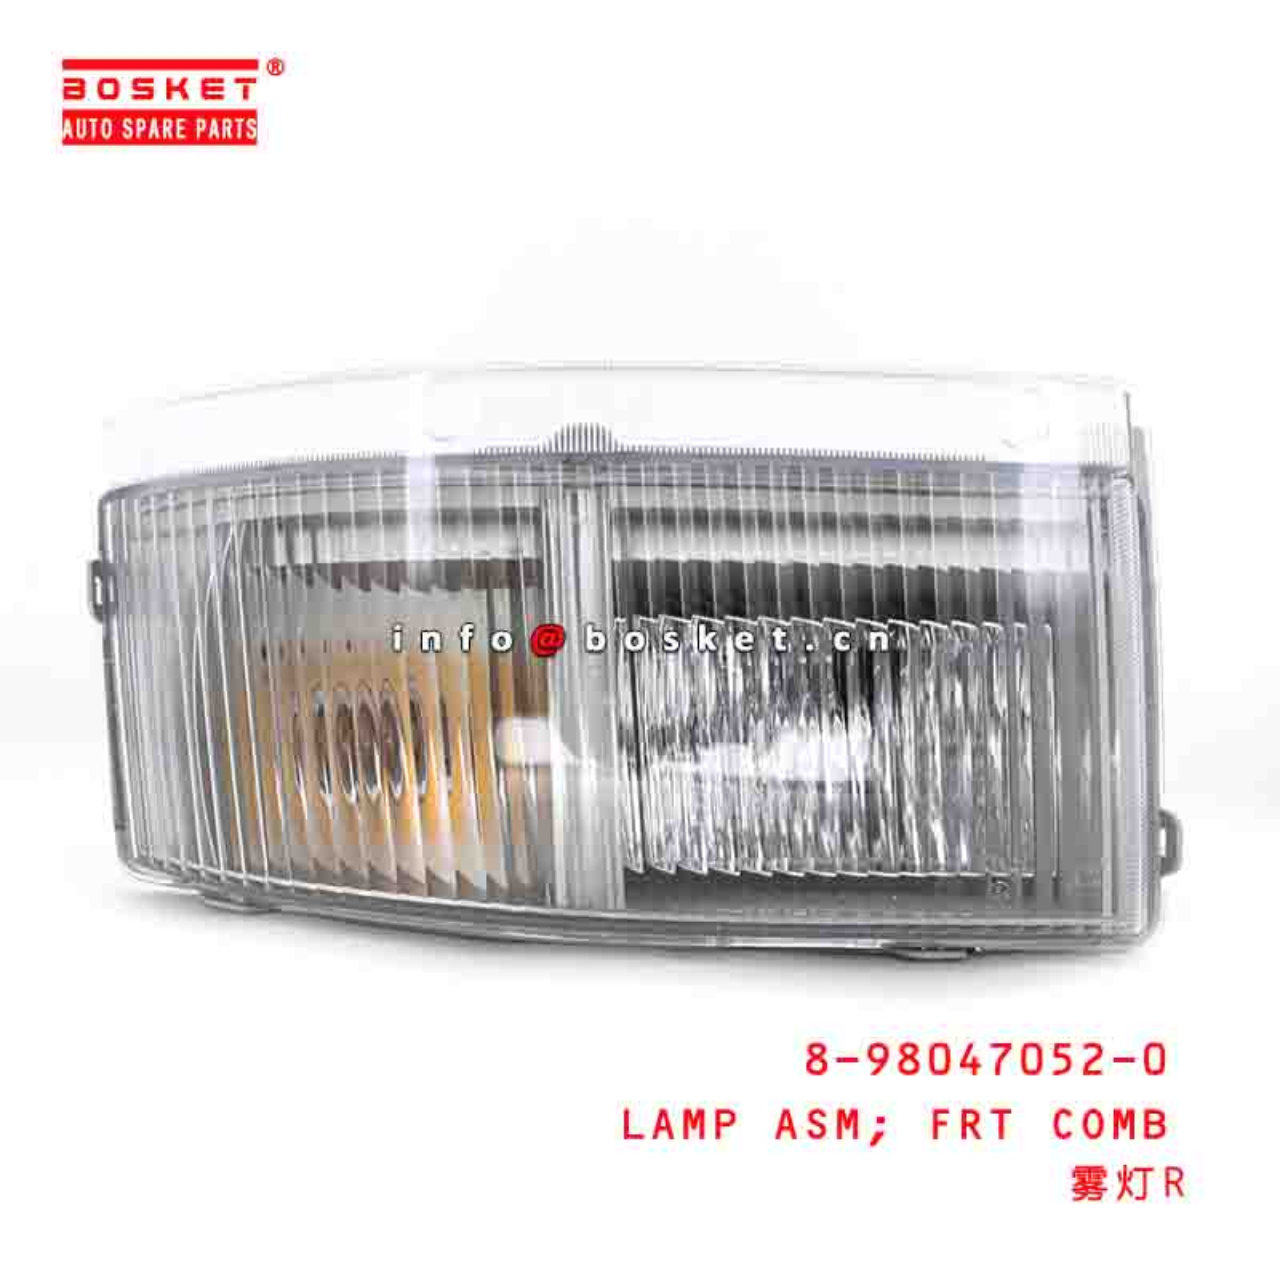 8-98047052-0 8980470520 QINGLING FRONT COMBINATION LAMP ASSEMBLY R Suitable FOR ISUZU VC46